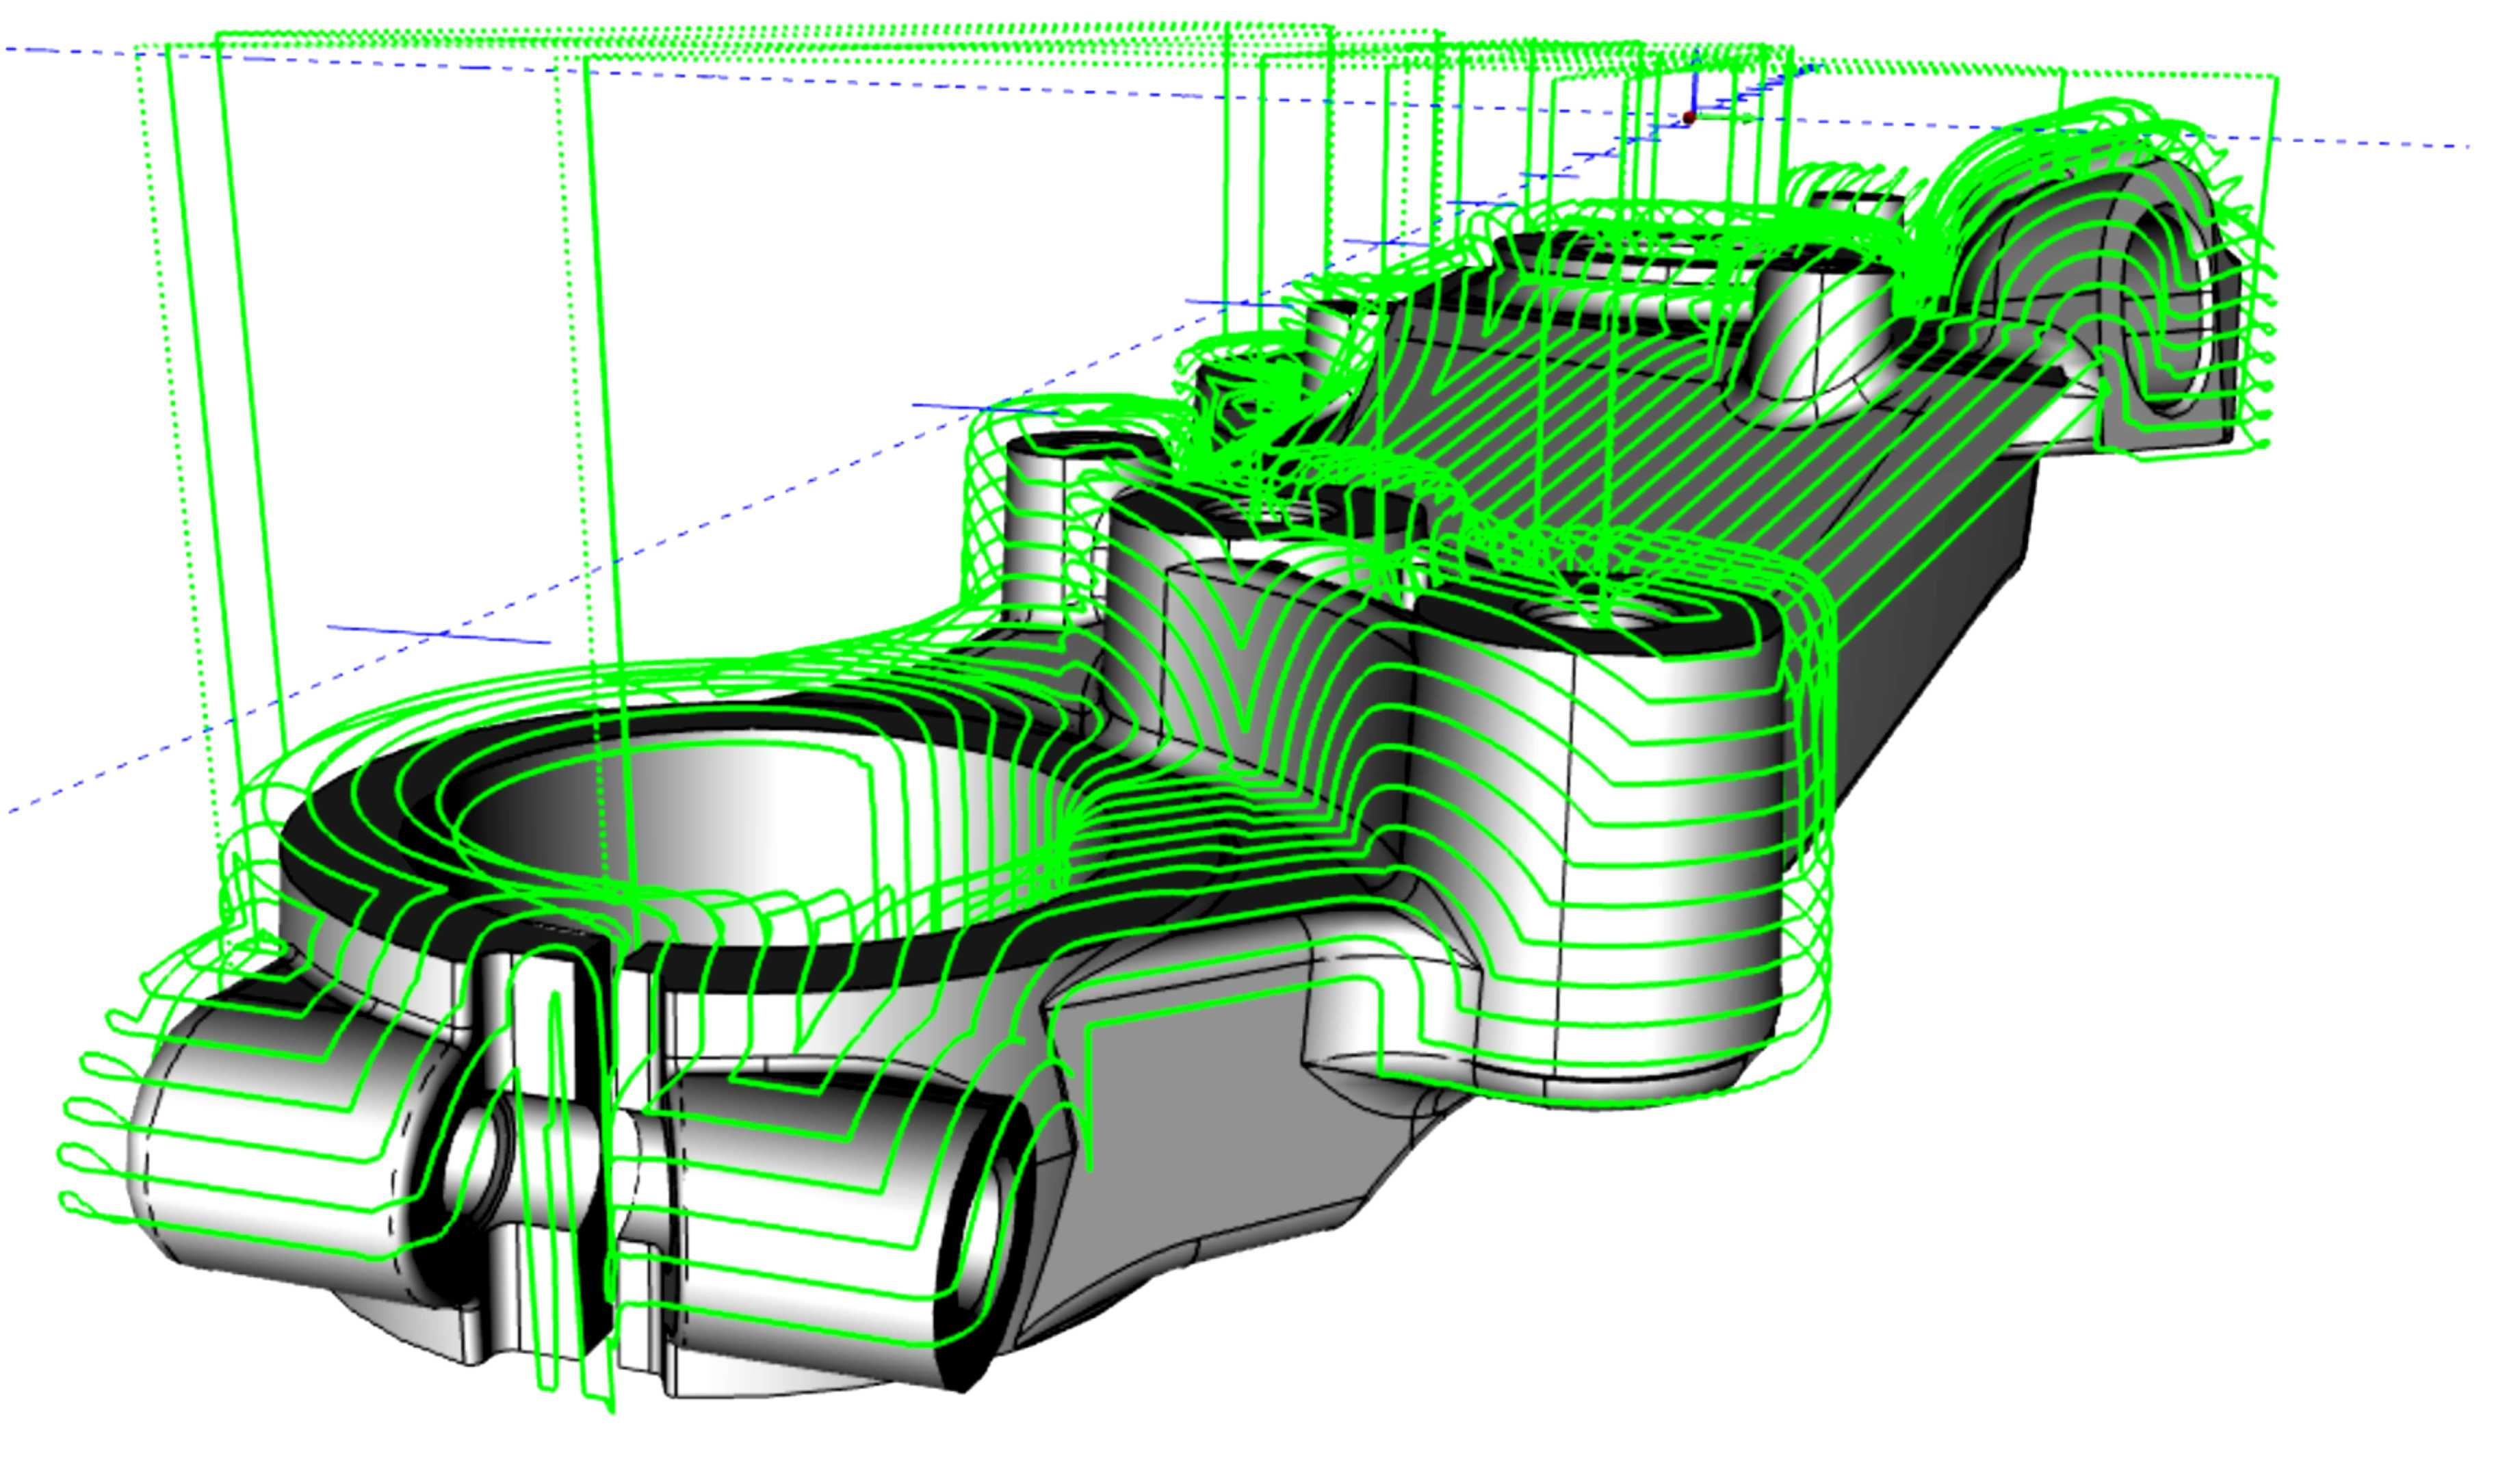 3d cad-cam toolpath